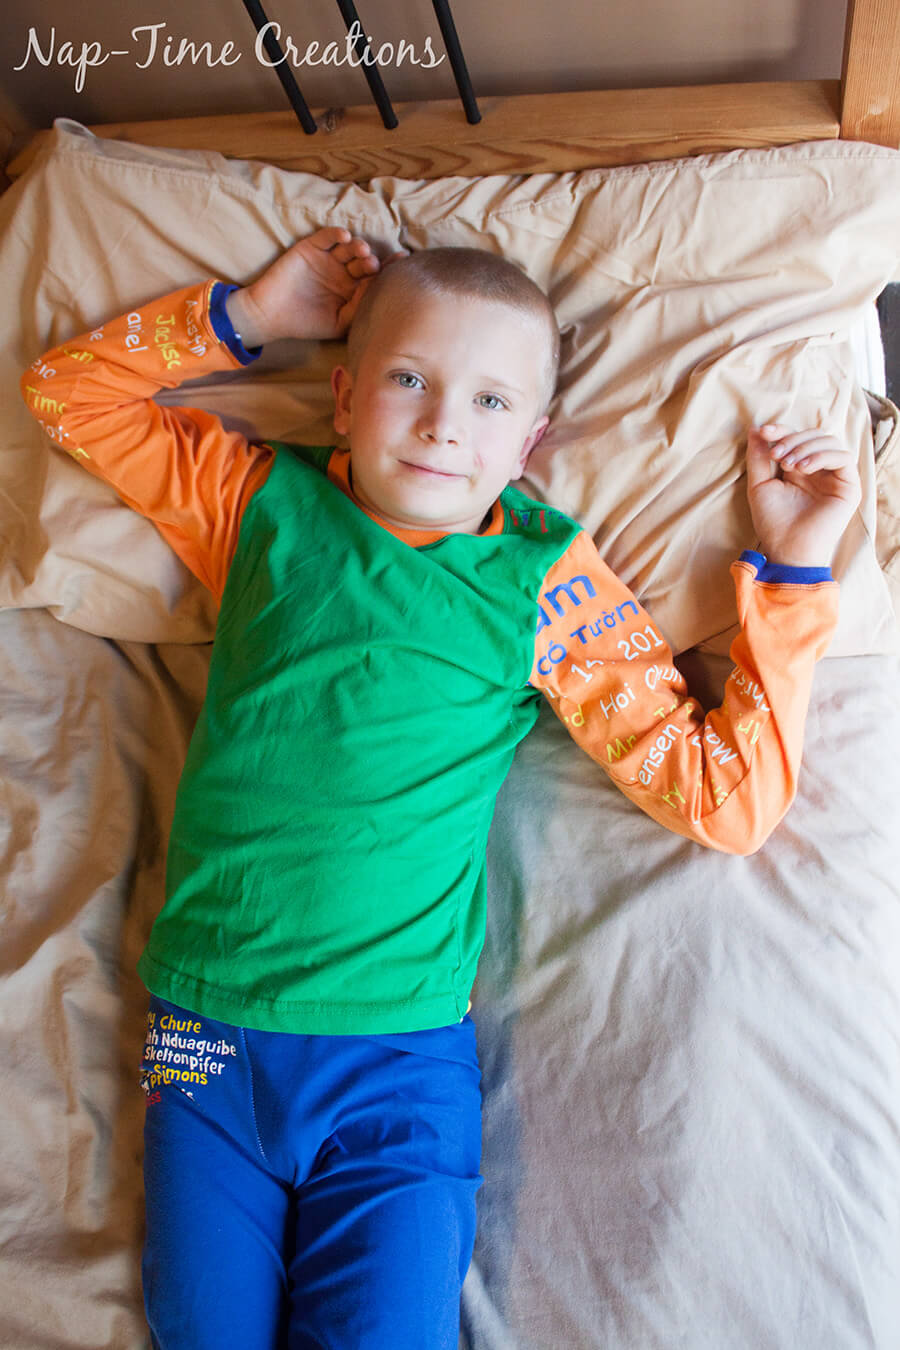 upcycling t-shirts to pjs 2